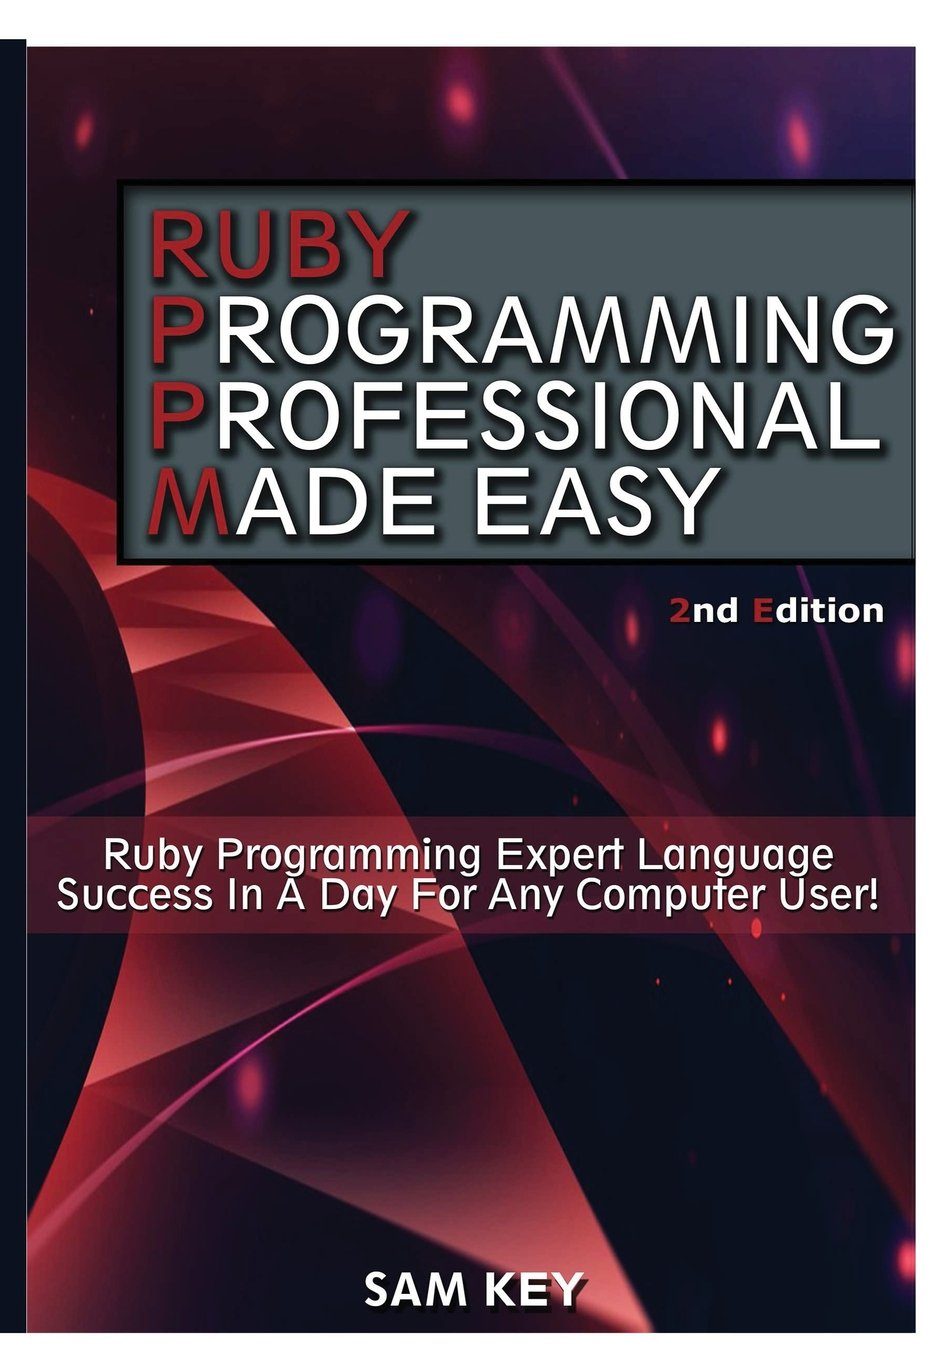 Read Online Ruby Programming Professional Made Easy PDF